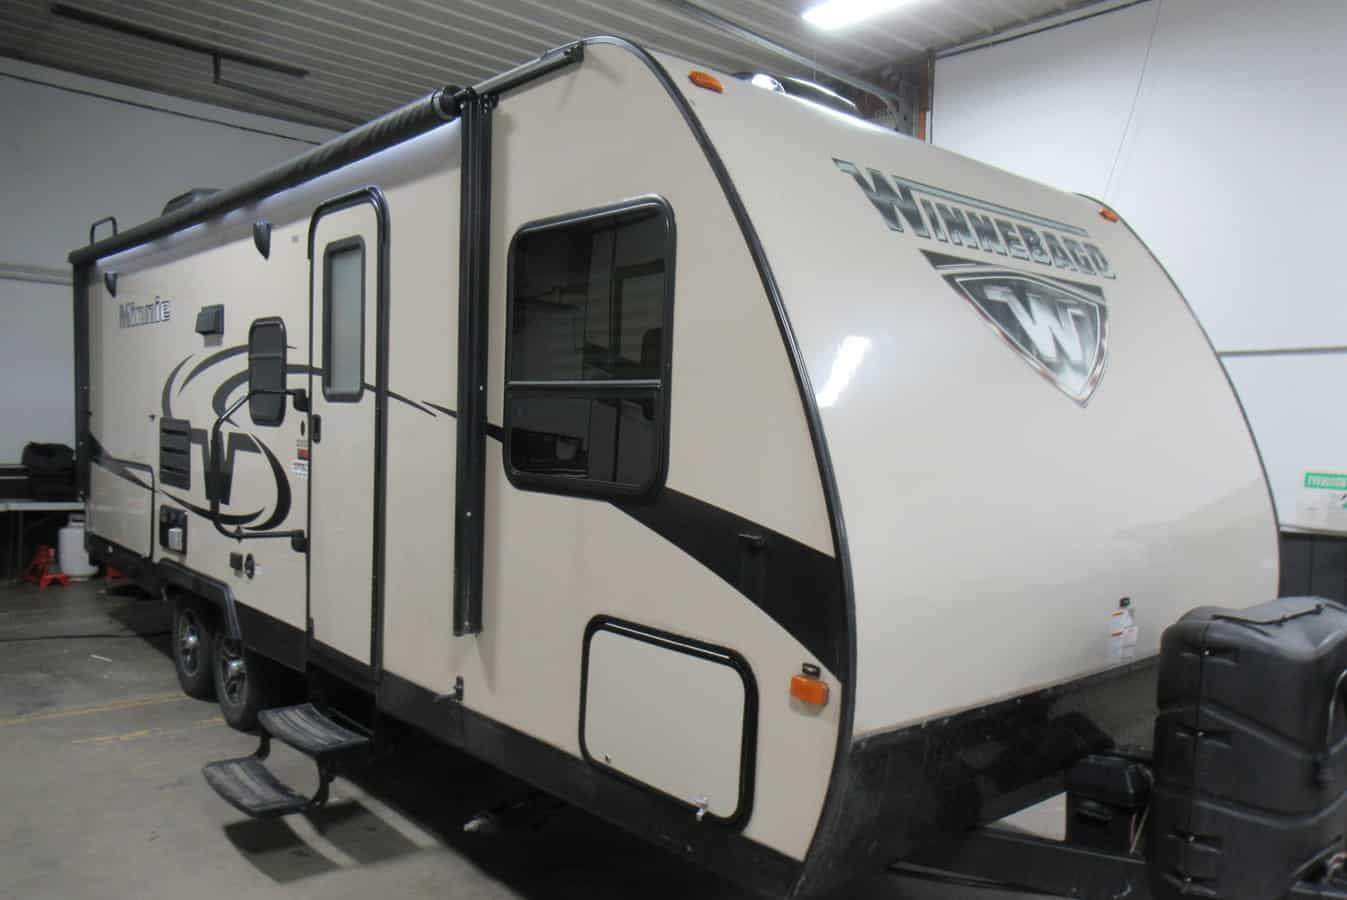 USED 2017 WINNEBAGO MINNIE 2201DS